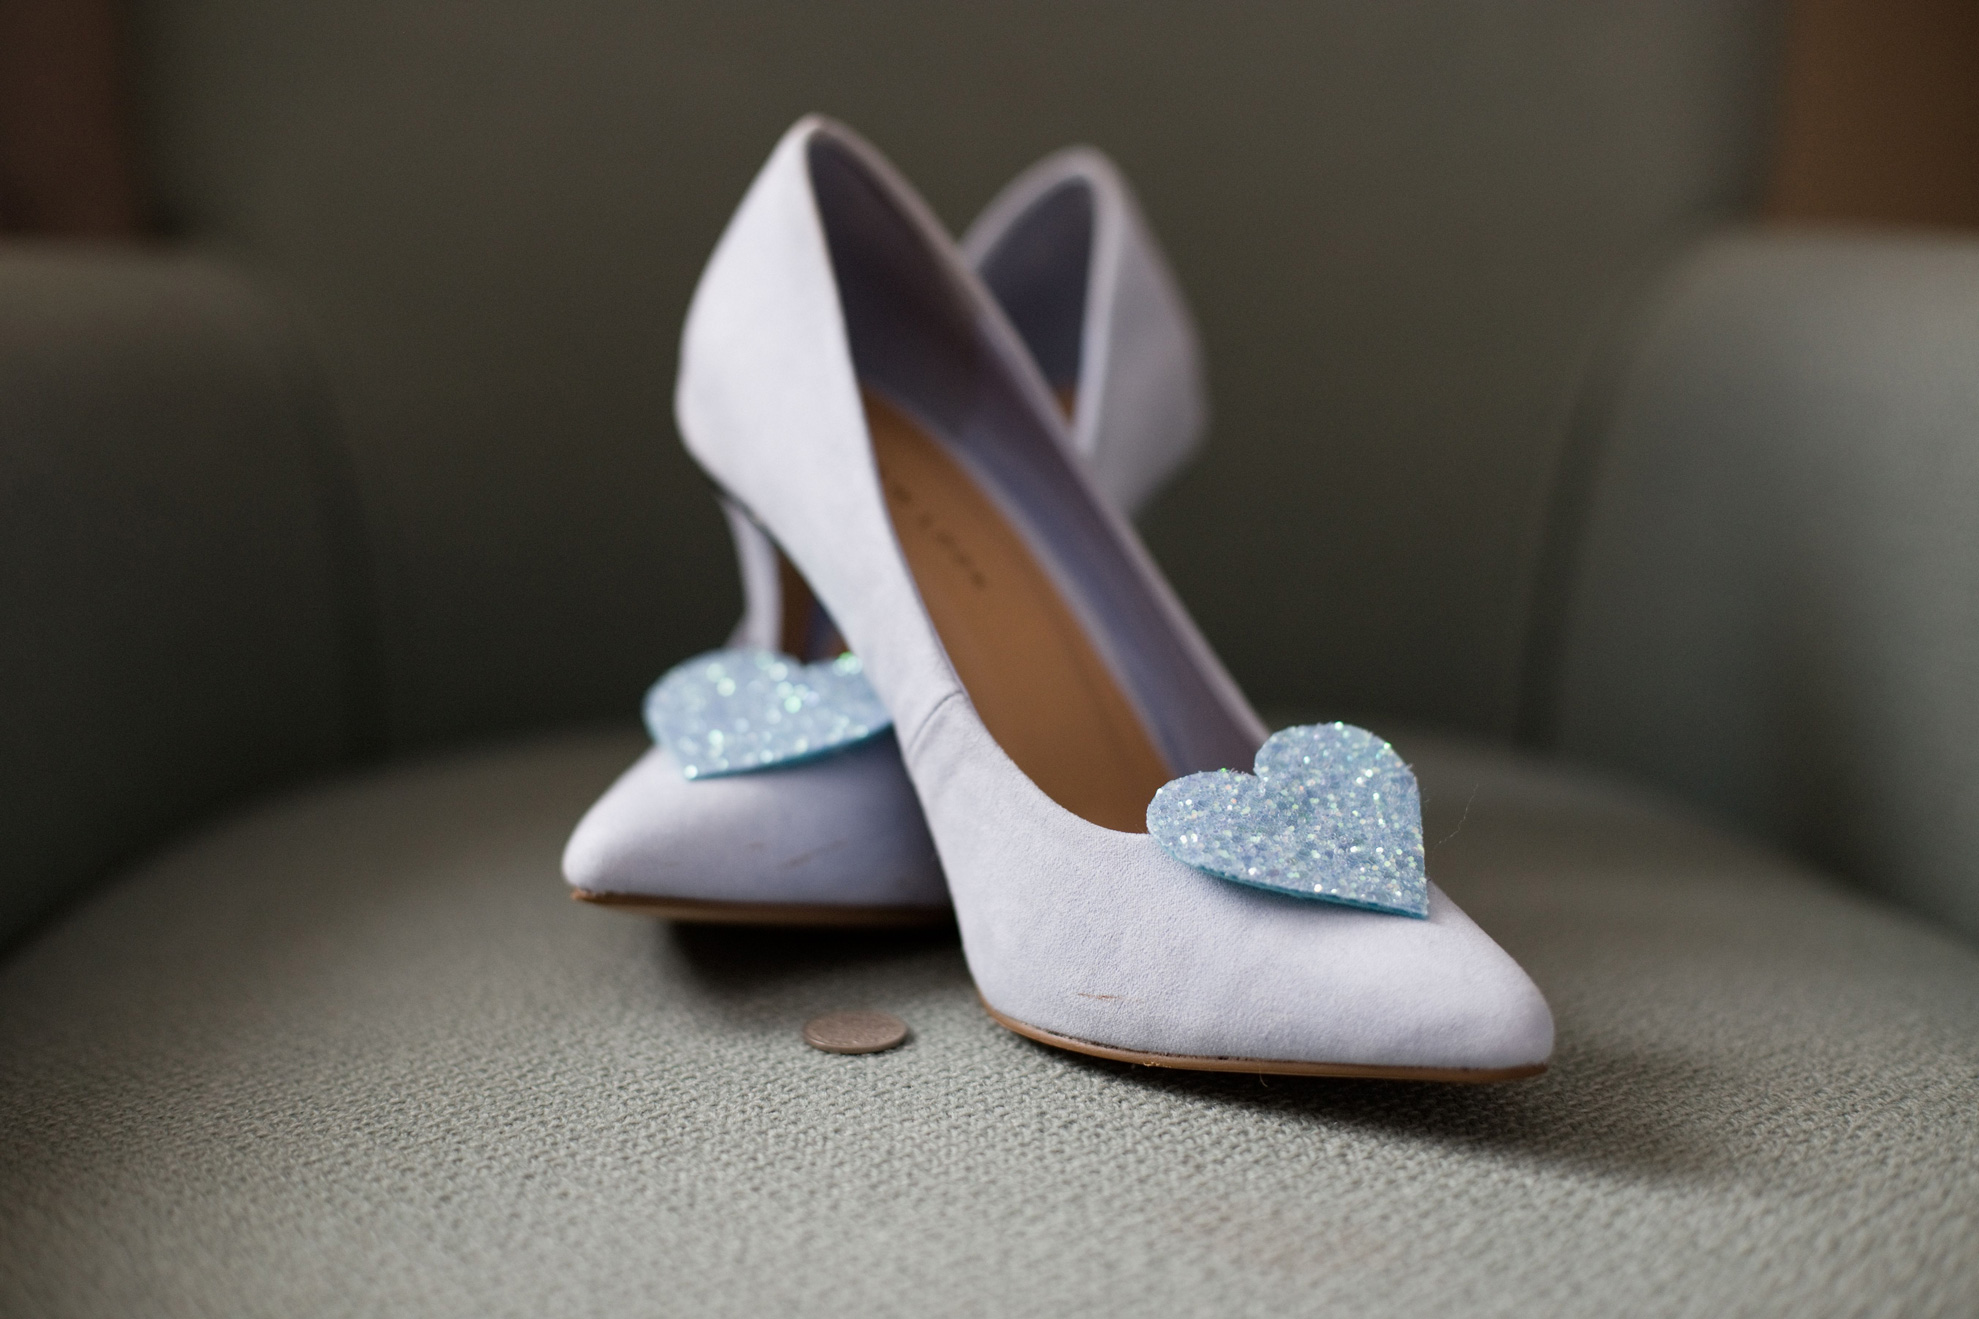 Penny in Wedding Shoes